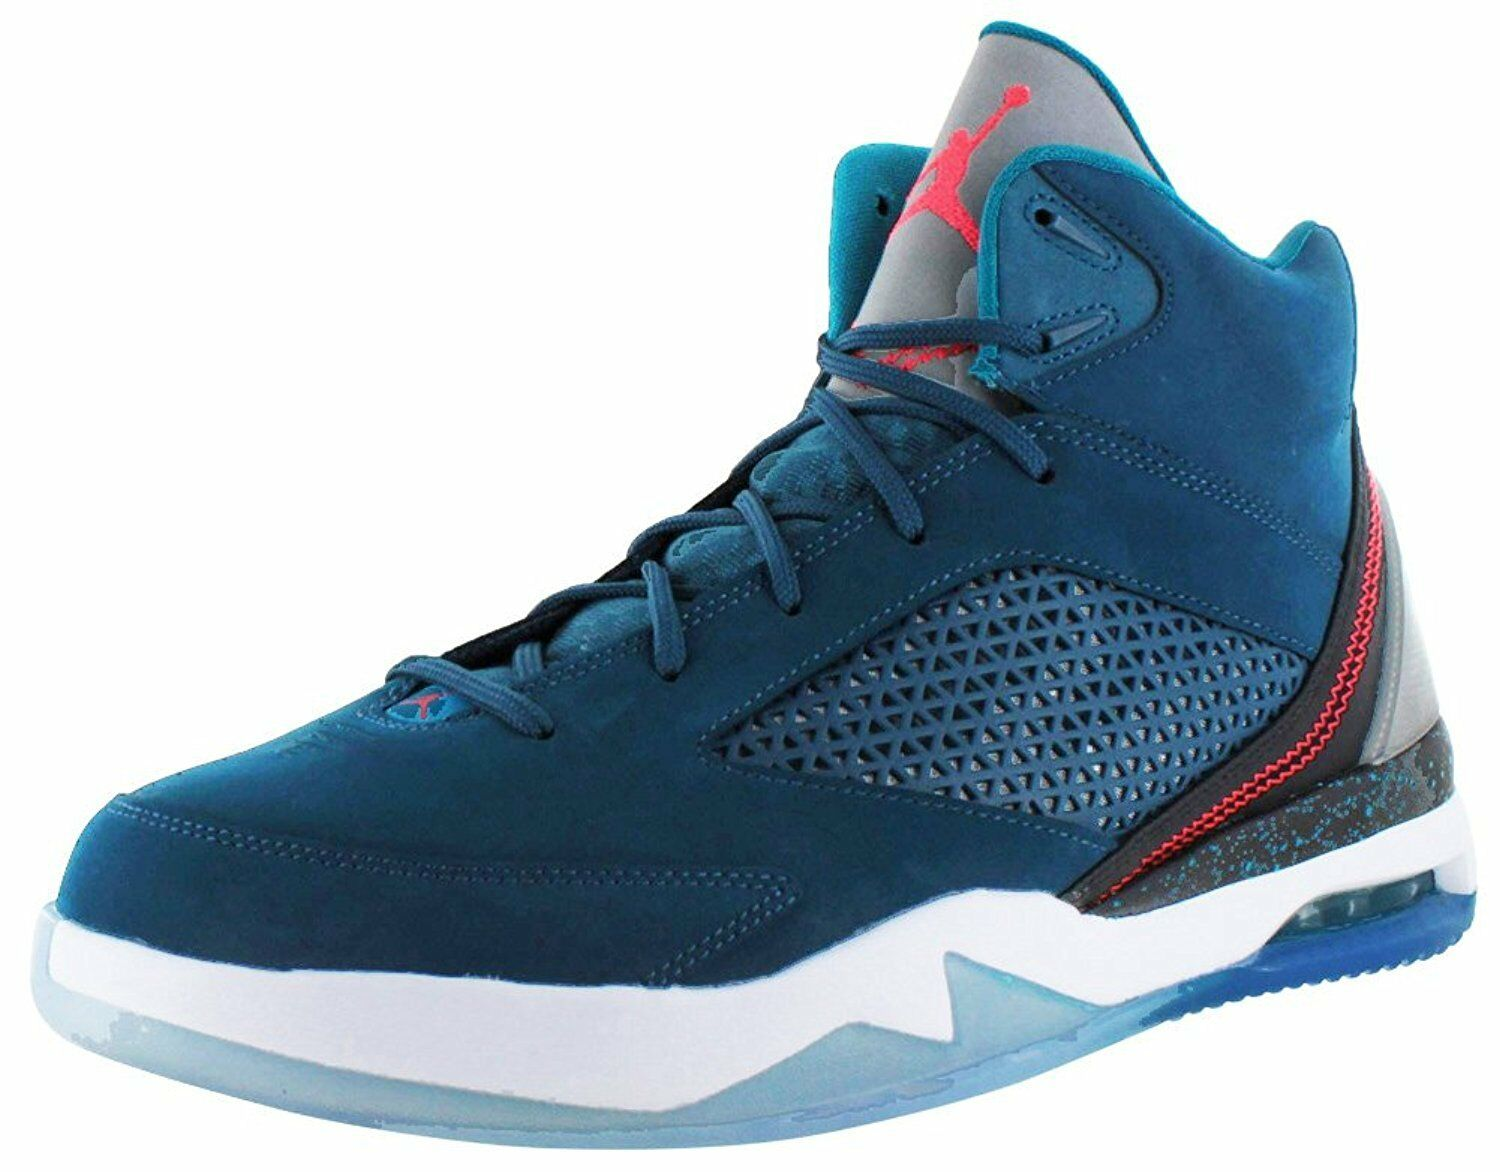 Nike Air Jordan Flight Remix Men's Basketball Shoes - Comfortable Seasonal clearance sale